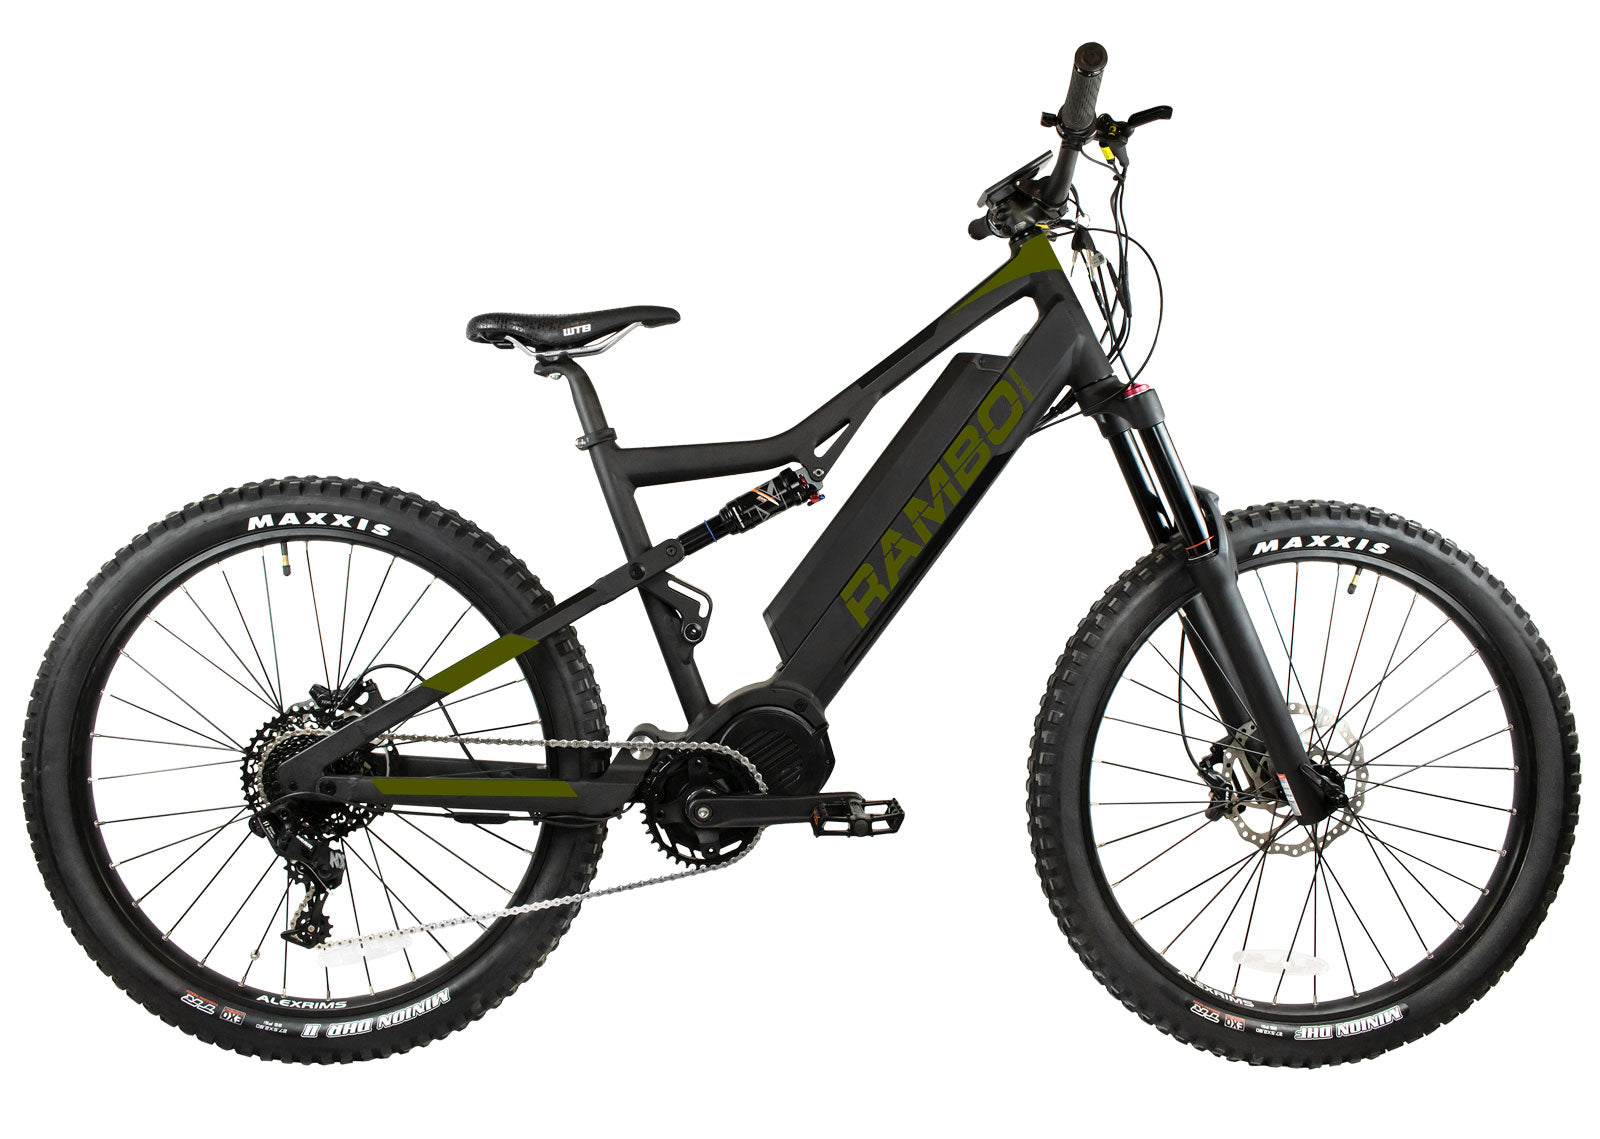 RAMBO RAMPAGE 1000W XTREME PERFORMANCE FULL SUSPENSION - Electric Bike Ridetique.com